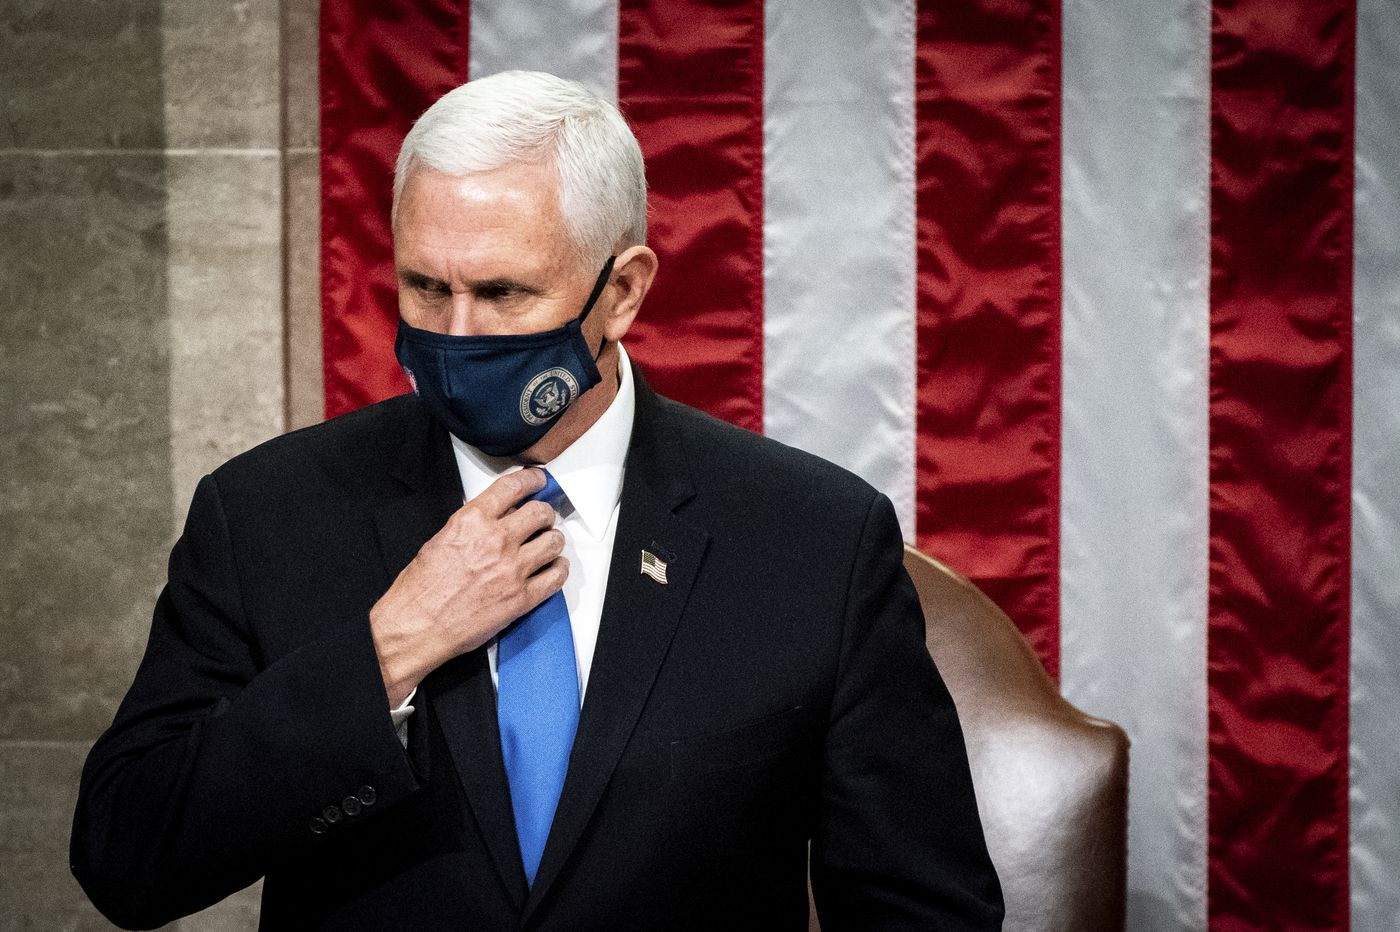 House calls on Mike Pence to invoke 25th Amendment to oust Trump after he says he won't do it